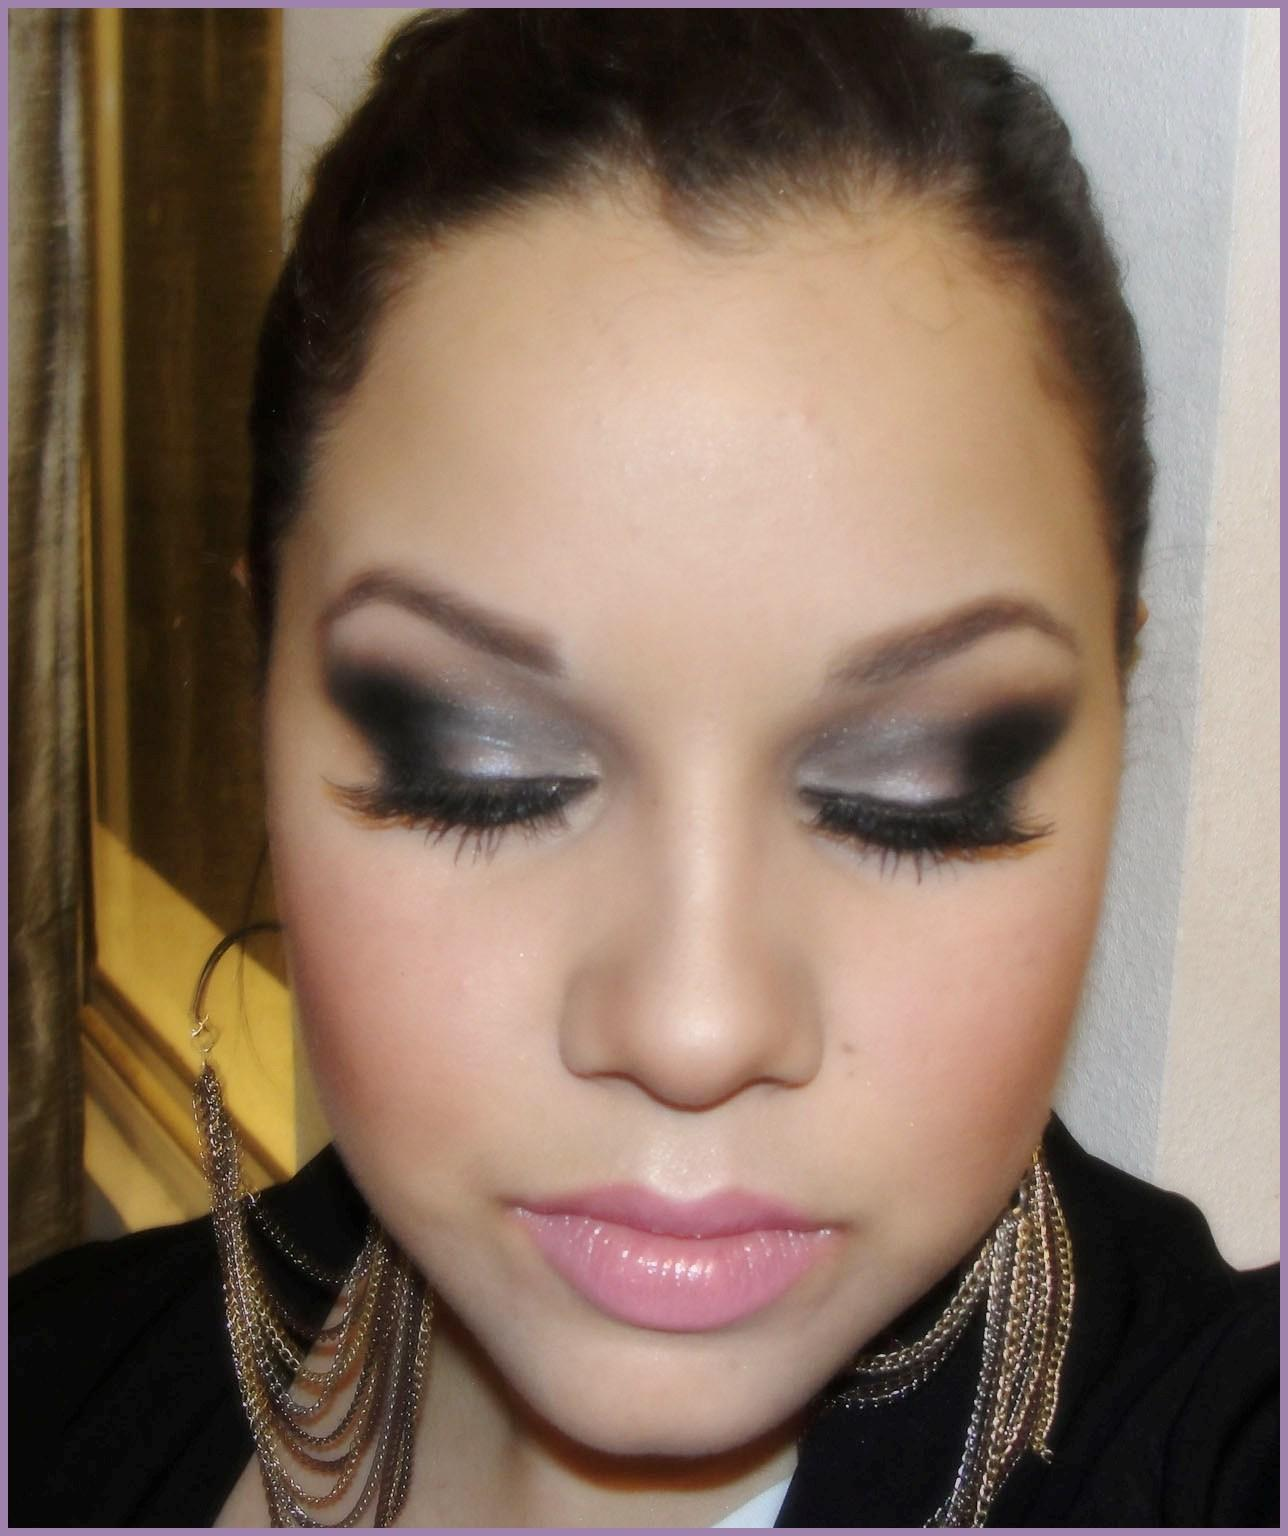 SUBTLY DAYTIME AND SULTRY NIGHTTIME EYE MAKE UP - image 5 - student project